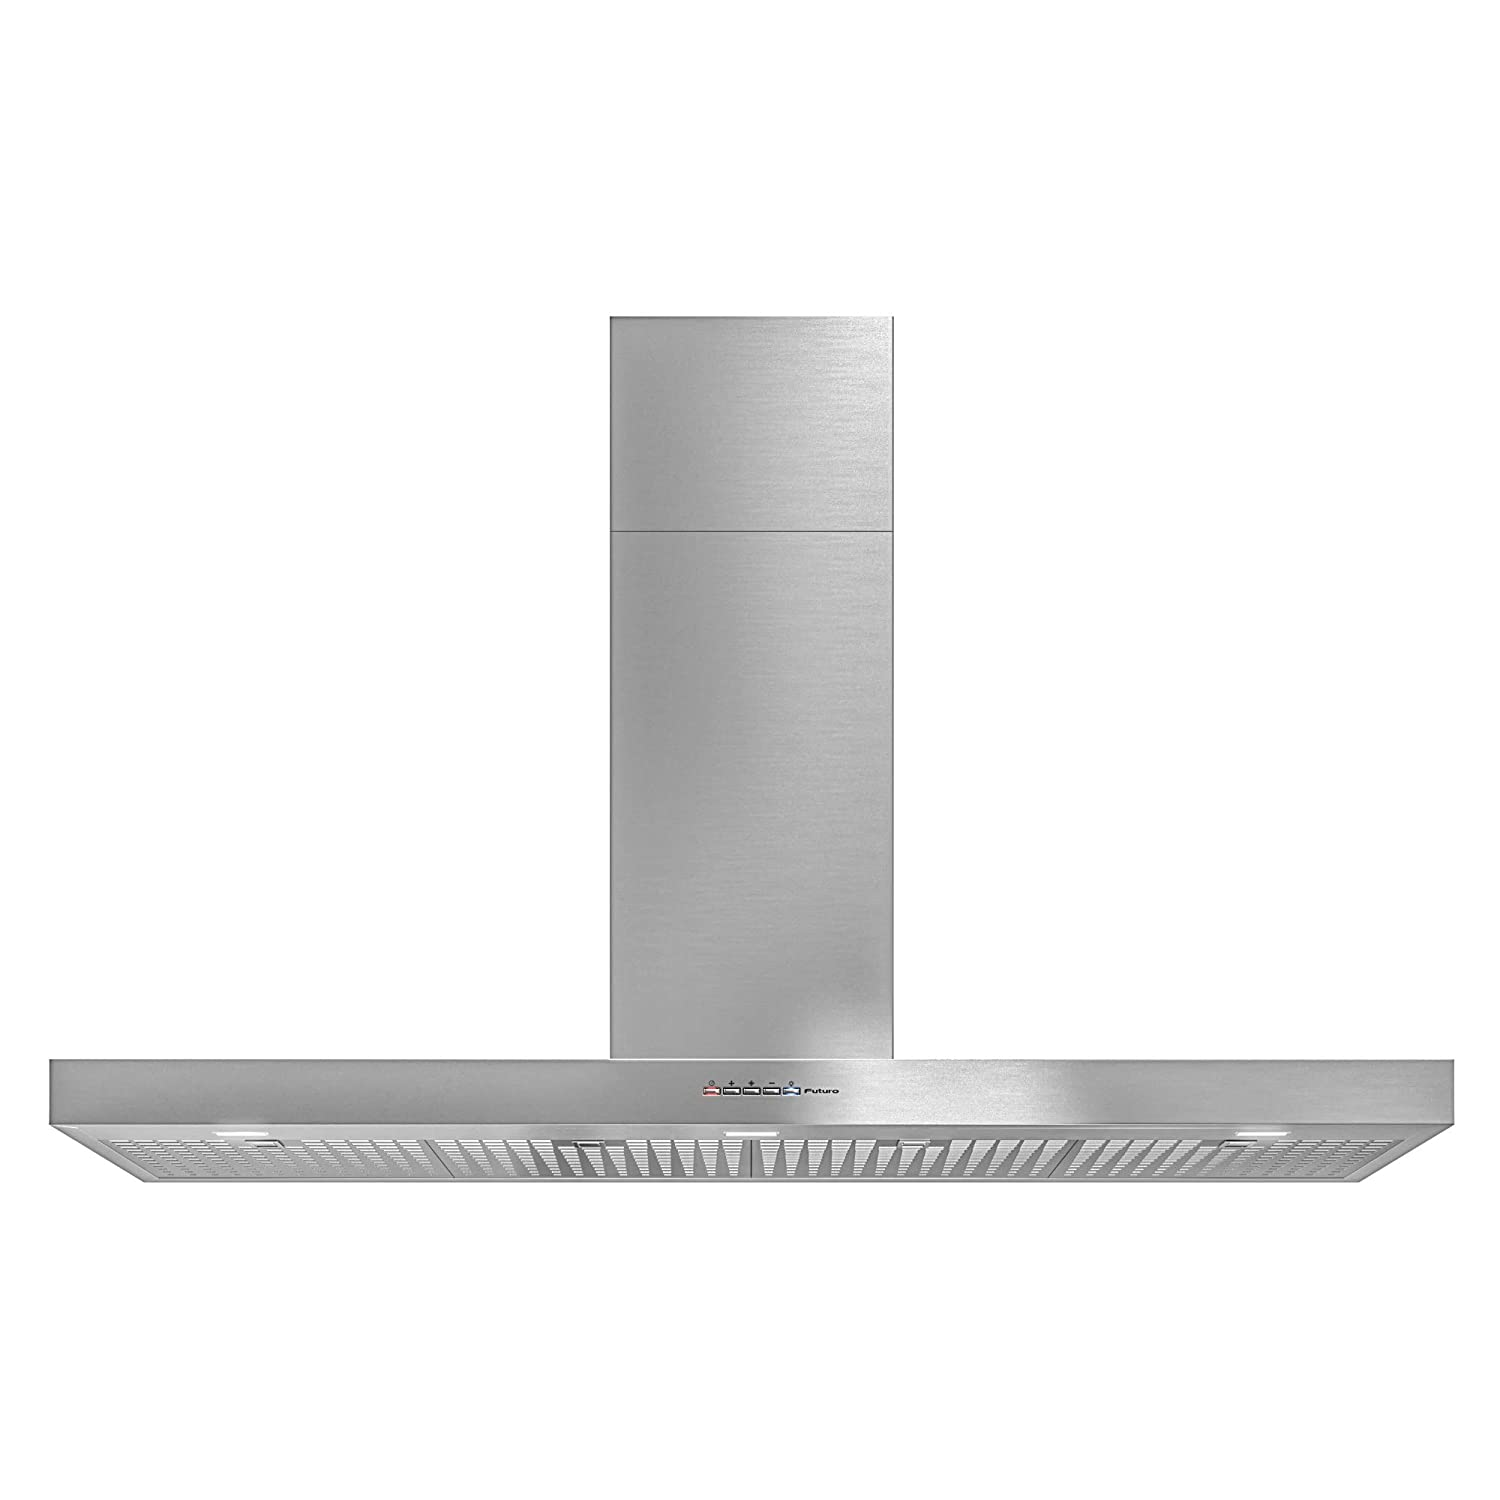 Futuro Futuro Positano 48 Inch Wall-mount Kitchen Range Hood - Modern Slim Stainless Steel Italian Design - Contemporary Range Hood LED Ultra-Quiet with Blower